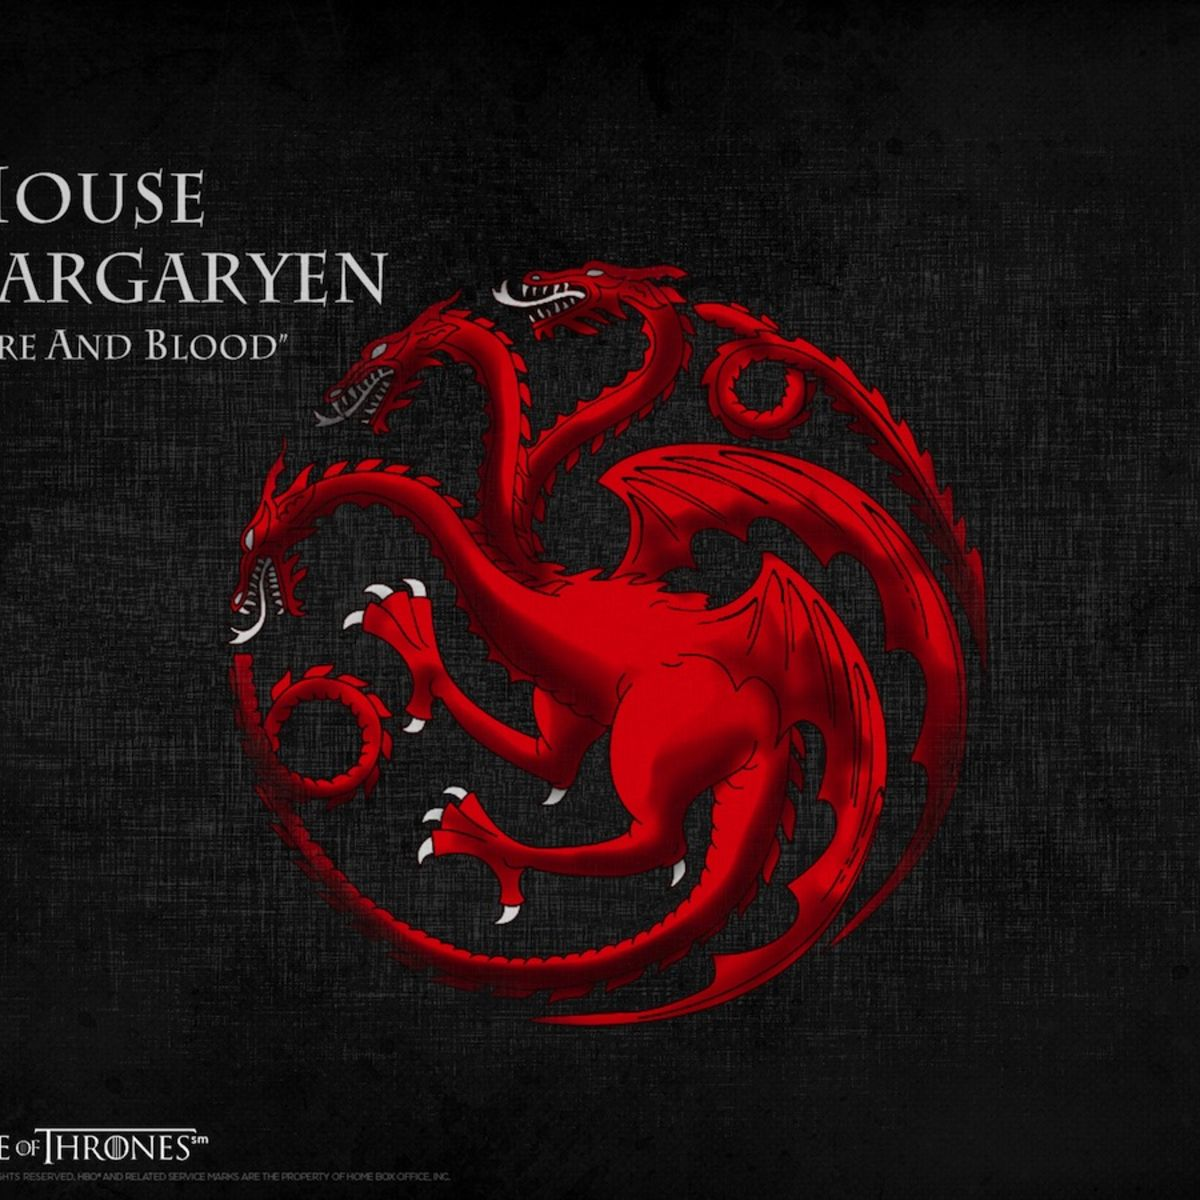 house-game-of-thrones-31246393-1600-1200.jpeg